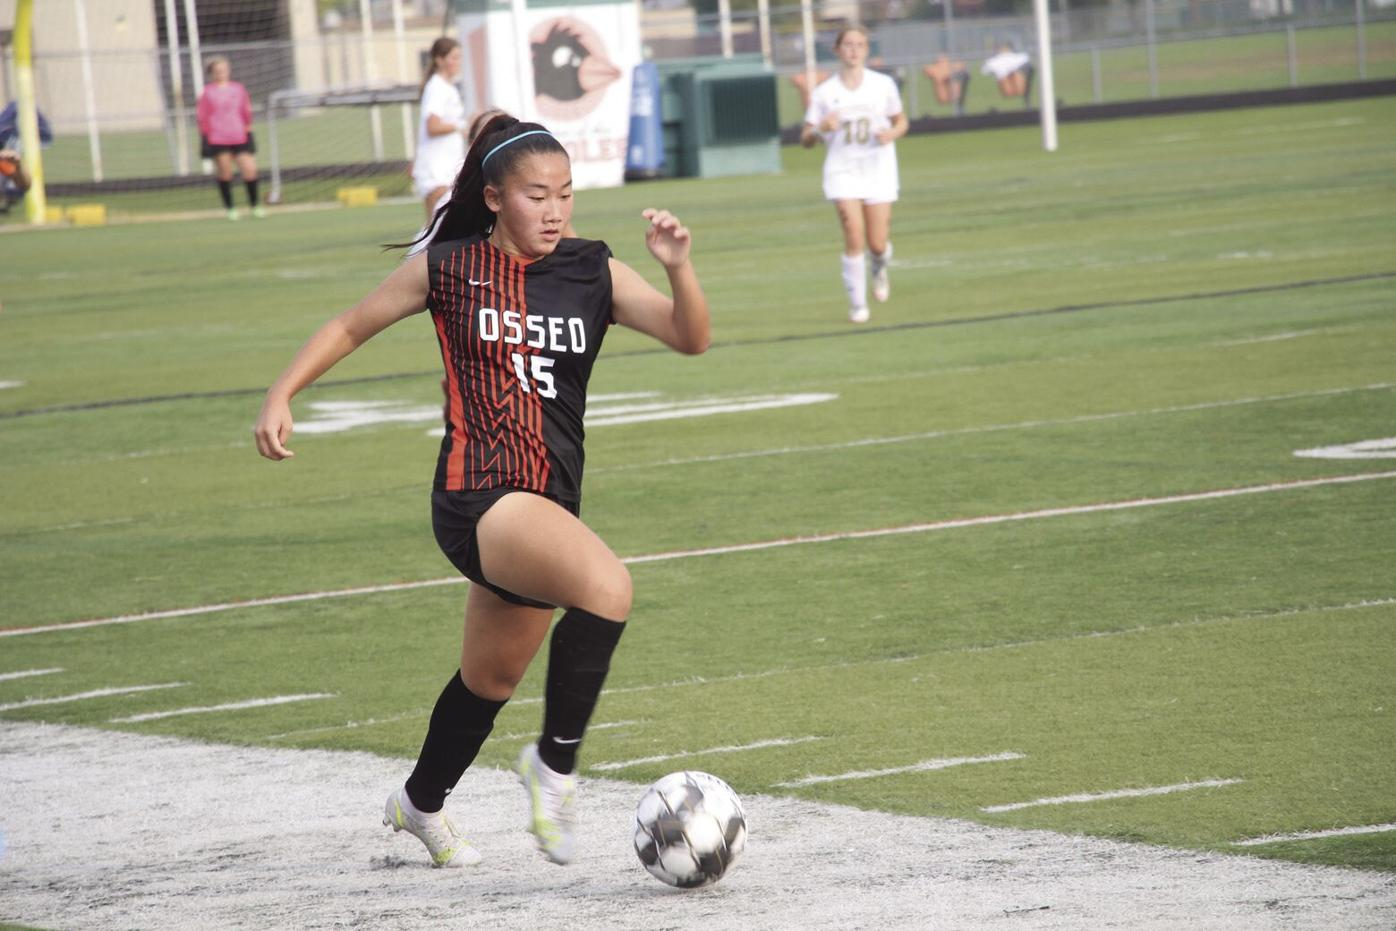 Osseo boys record two draws, loss before playoffs begin; girls go 0-2